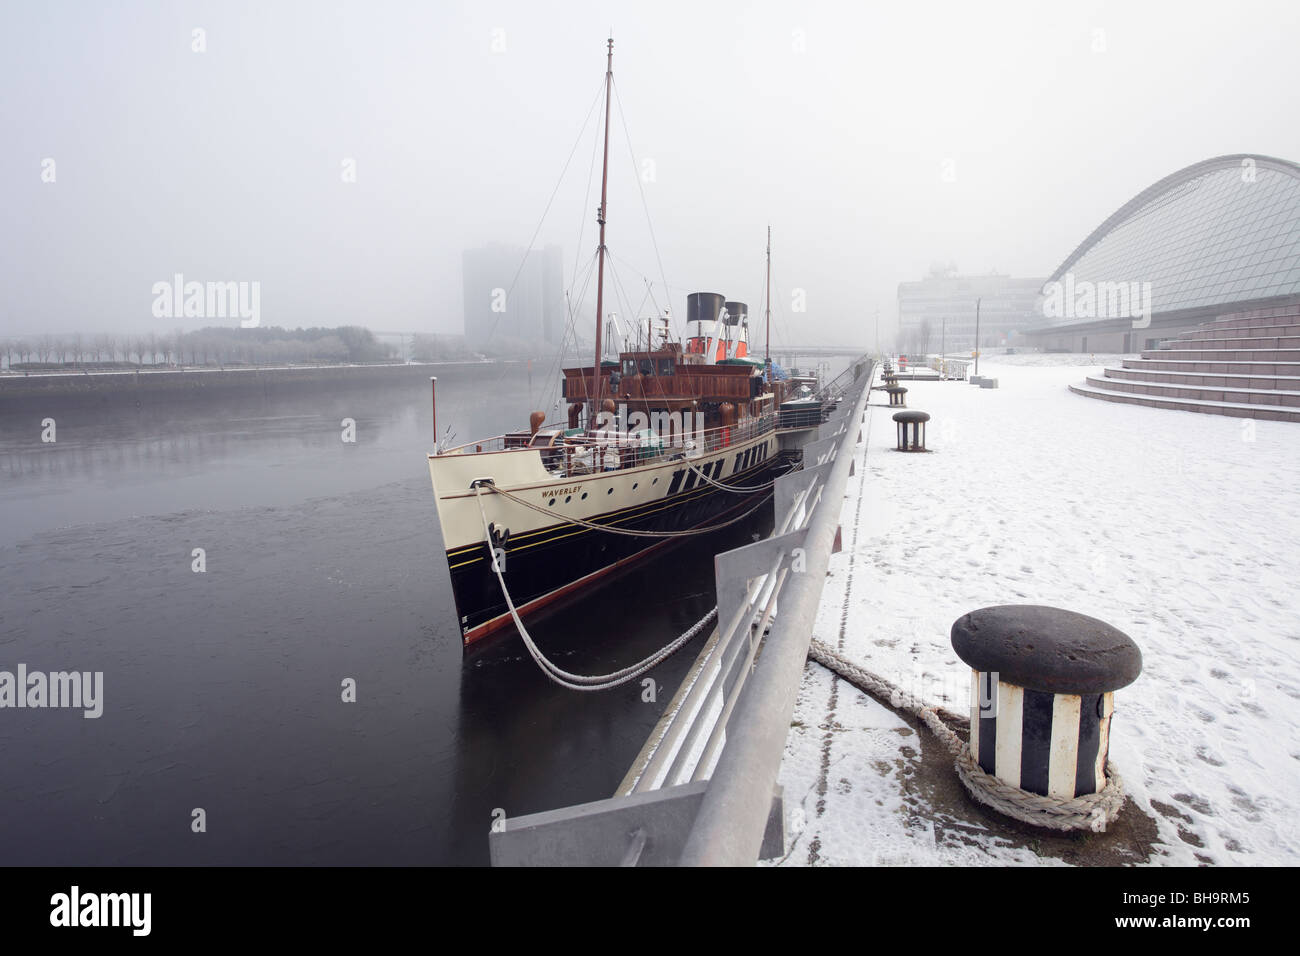 The Waverley Paddle Steamer berthed at a snowy Pacific Quay on the River Clyde in Glasgow, Scotland, UK Stock Photo